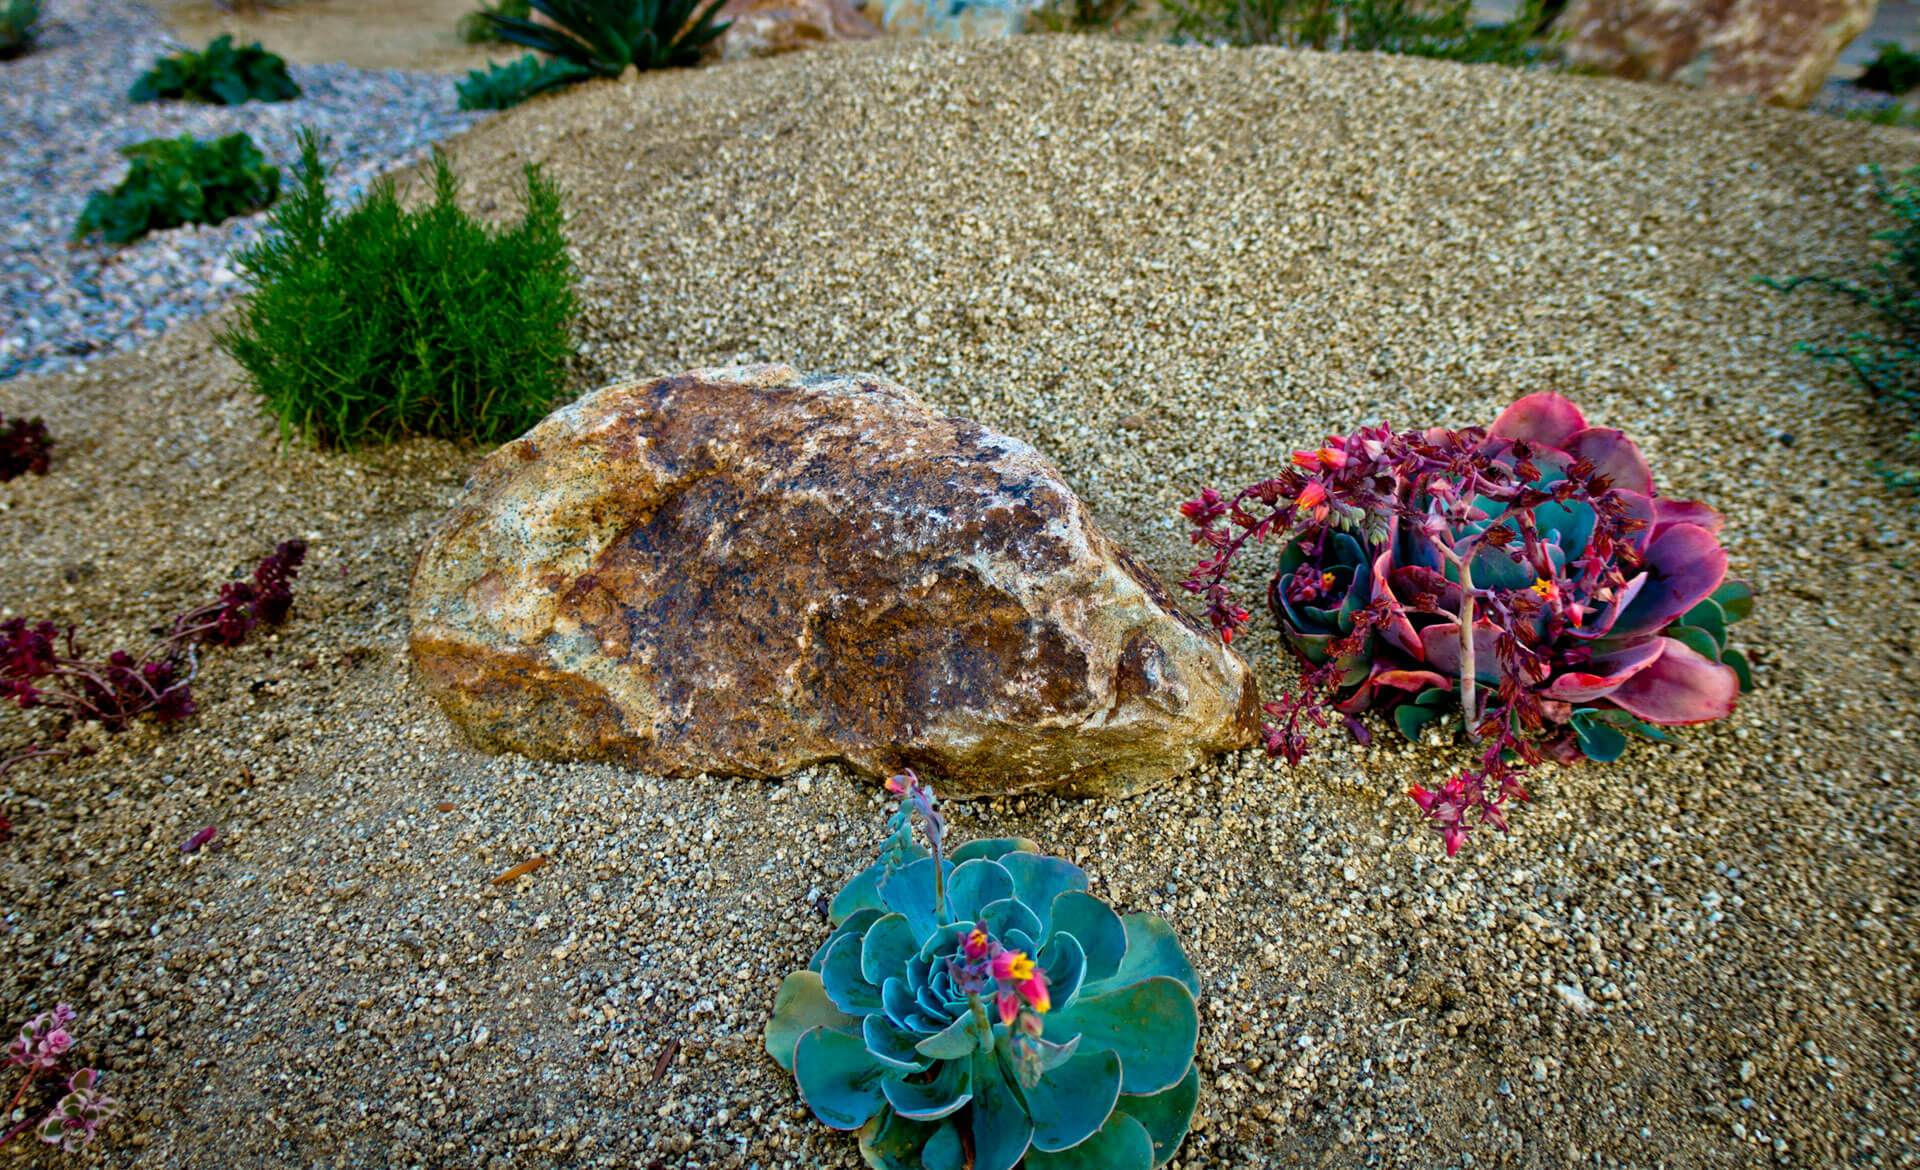 Succulents can provide a pop of color